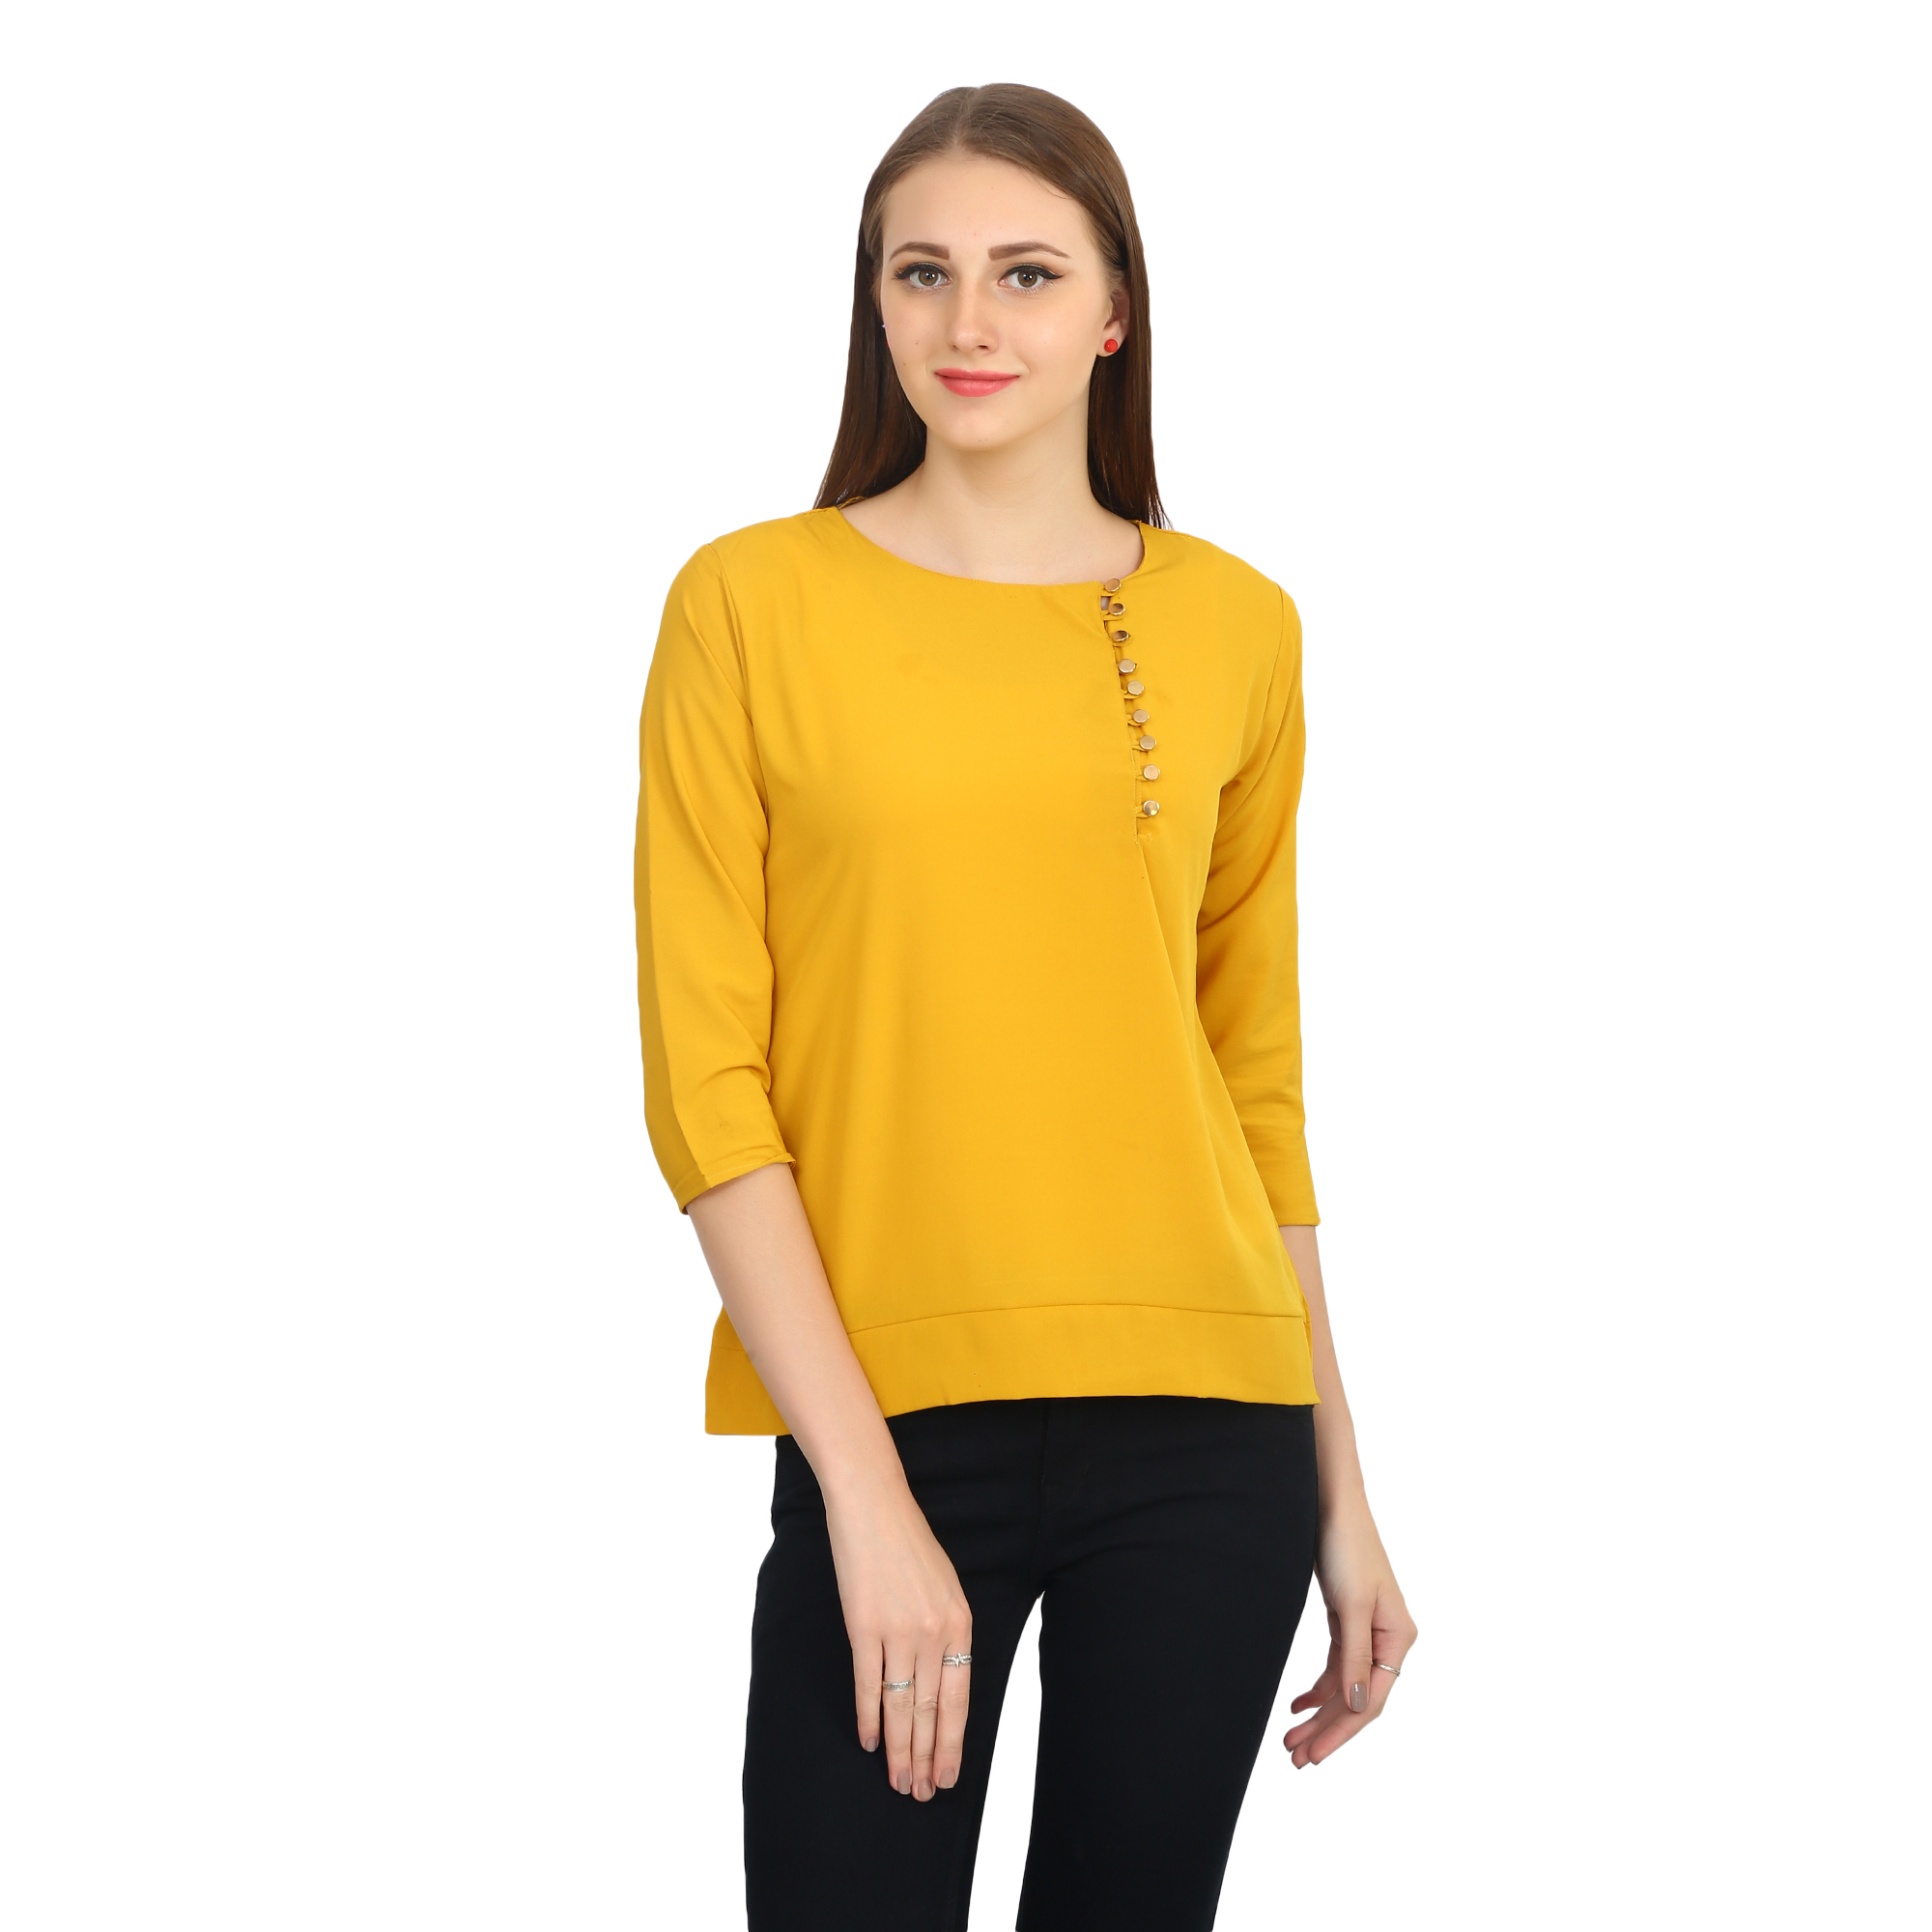 Funku Fashion Casual 3/4th Sleeve Solid Women's Yellow Top